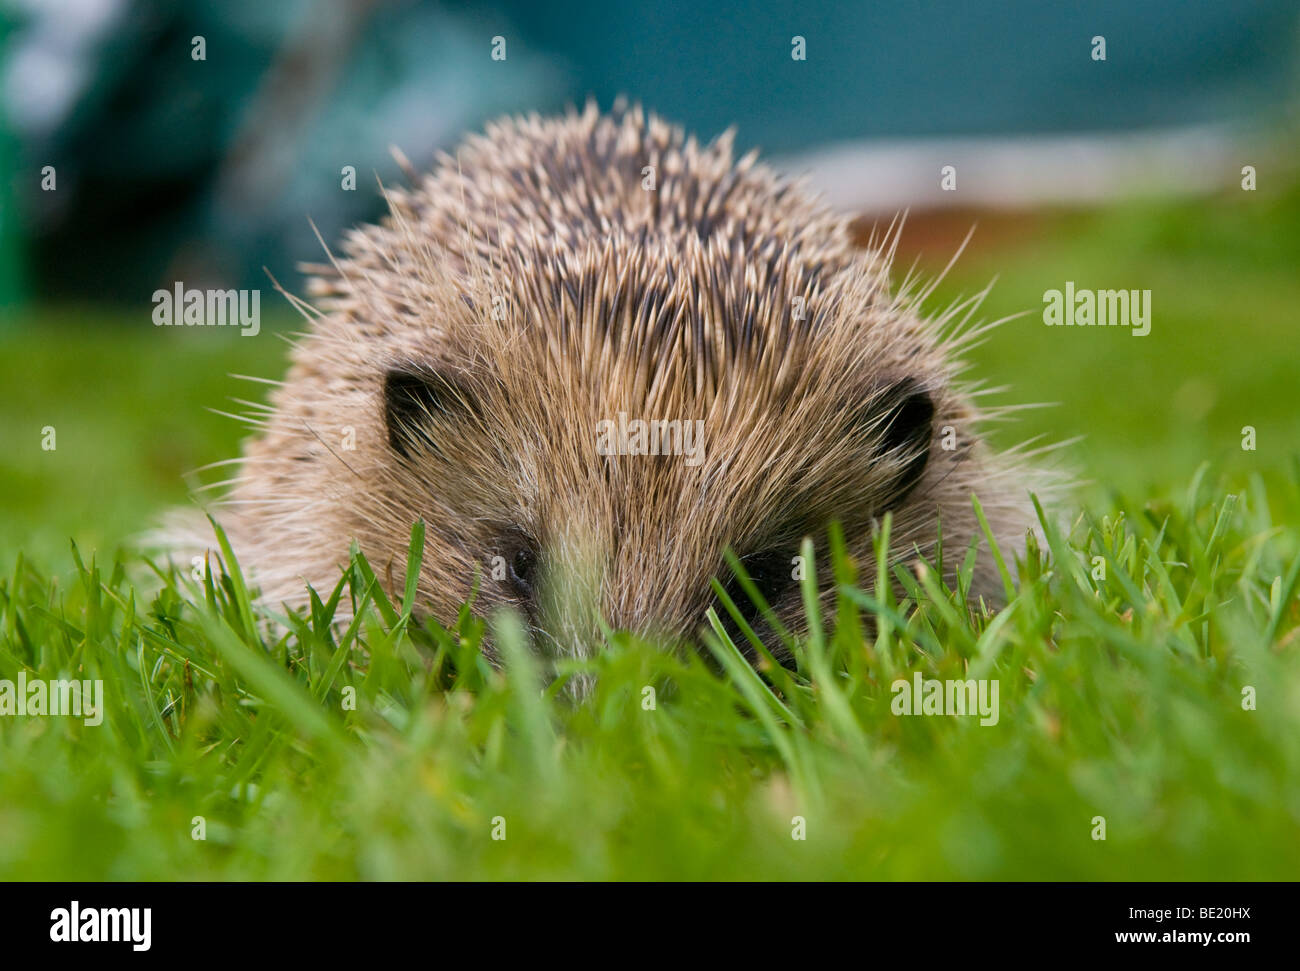 Young hedgehog hiding in the grass - Stock Image